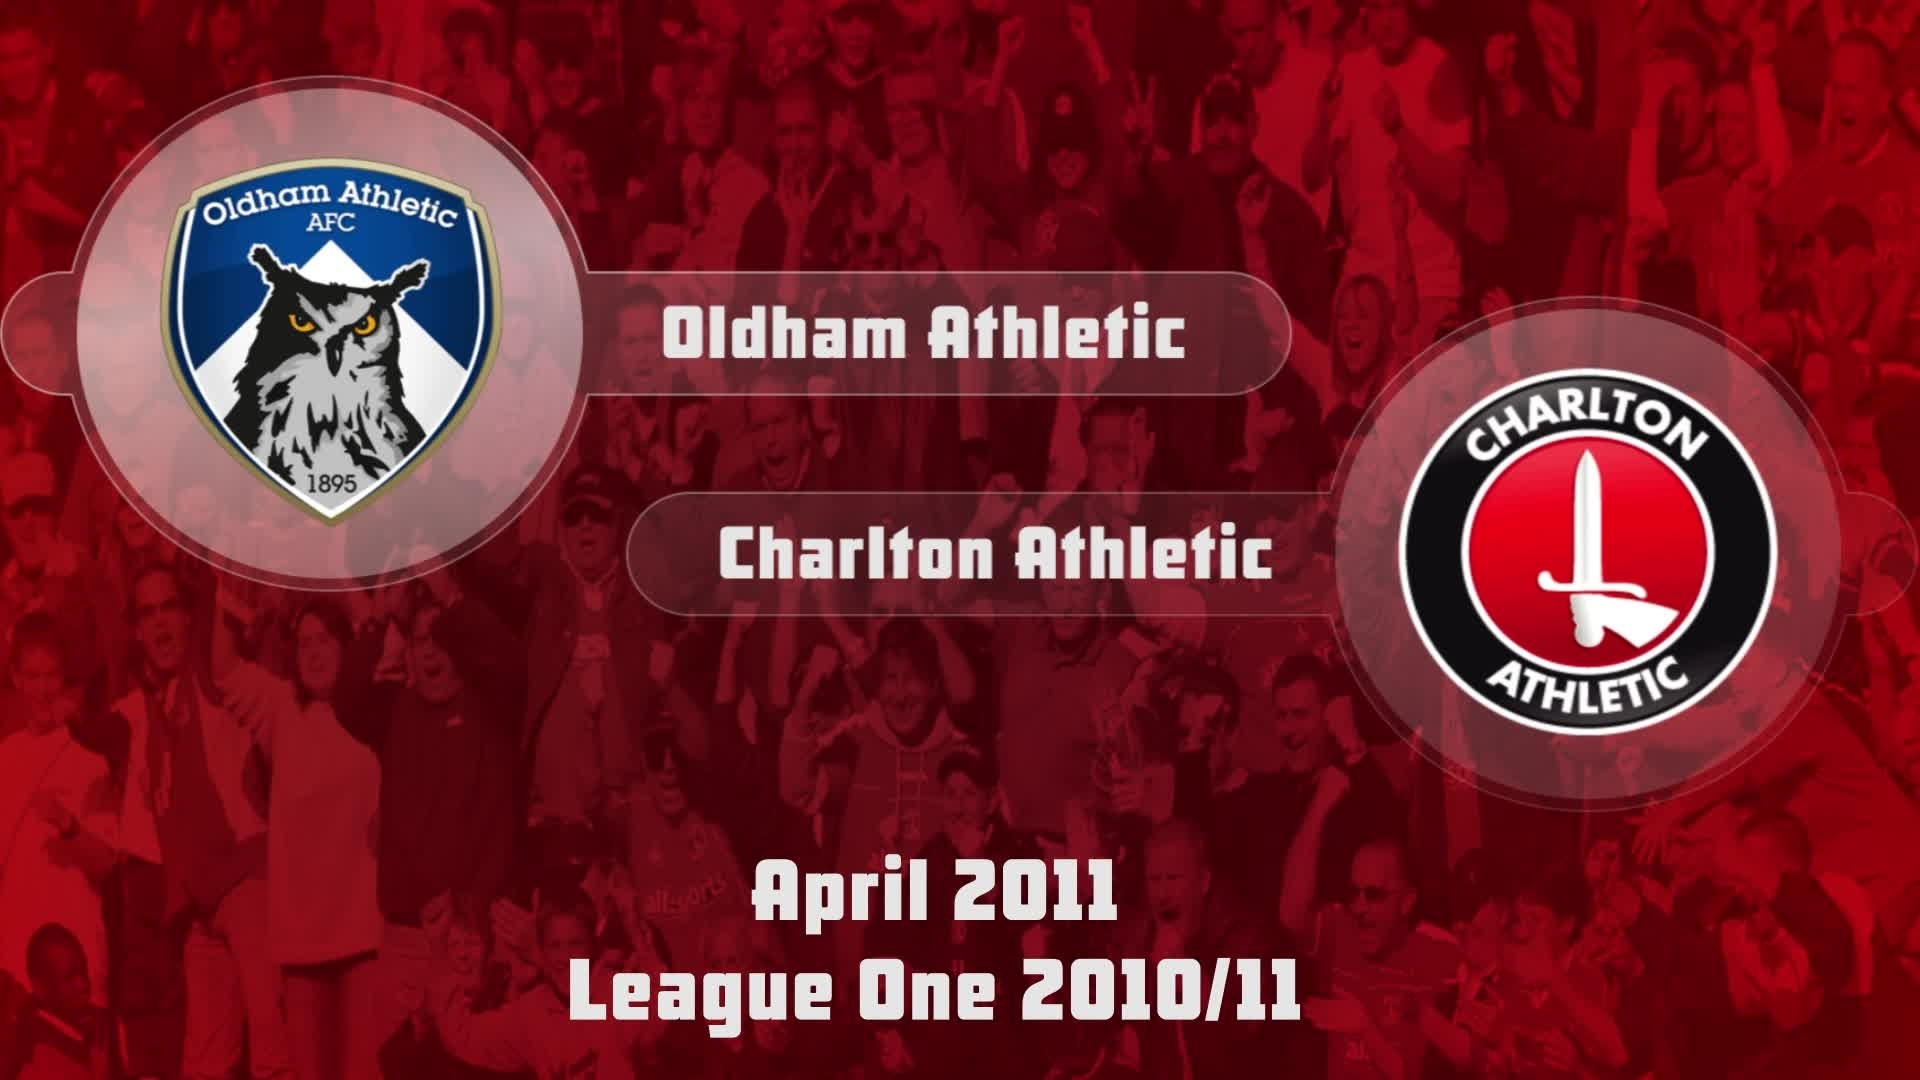 51 HIGHLIGHTS | Oldham Athletic 0 Charlton 0 (April 2011)